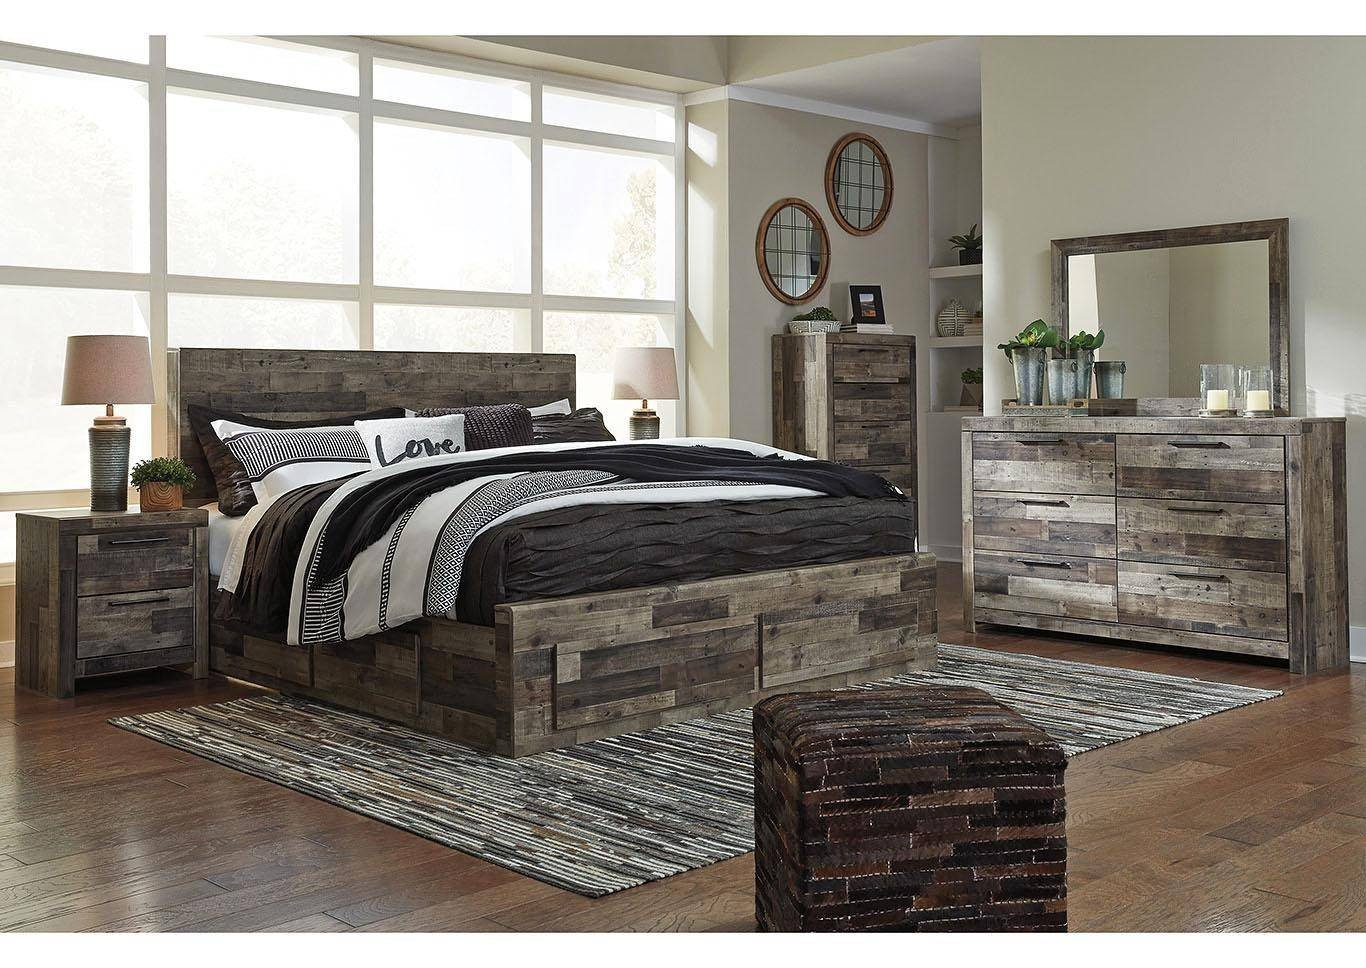 Ashley King Size Bedroom Set Inspirational ashley Derekson King Storage Bedroom Set 6 Pcs In Multi Gray Wood